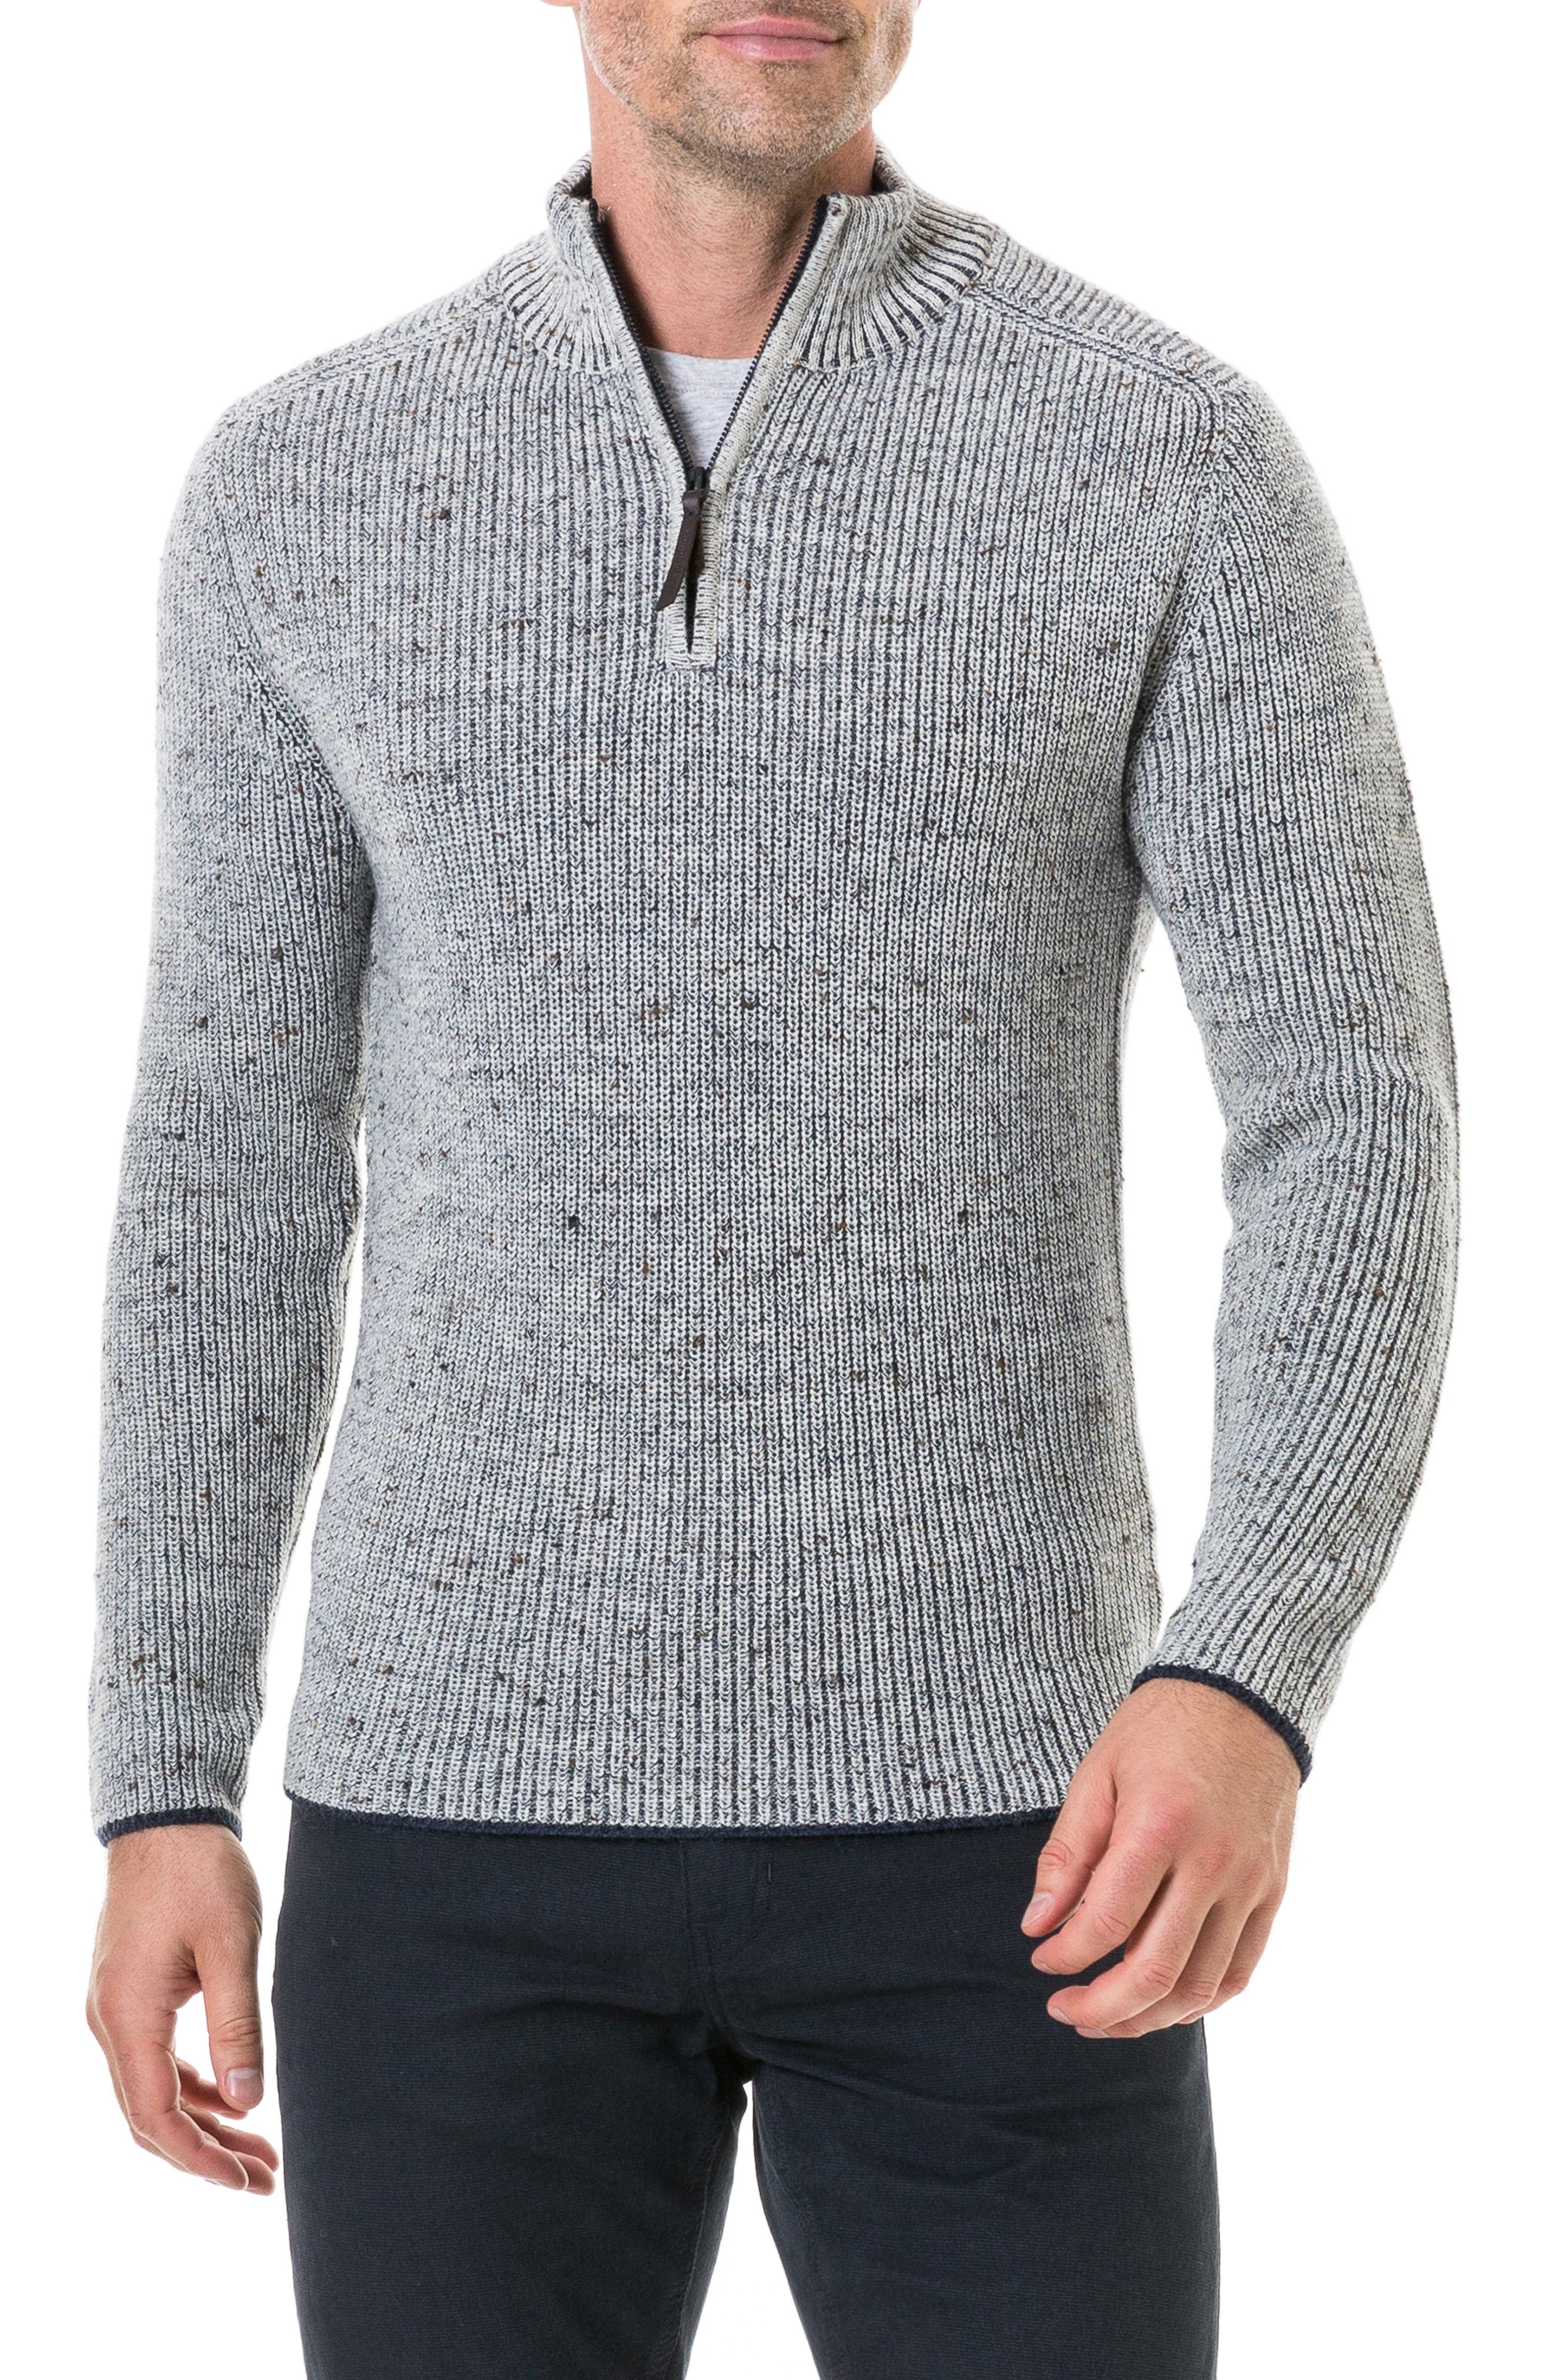 Slope Hill Wool Sweater,                         Main,                         color, OATMEAL